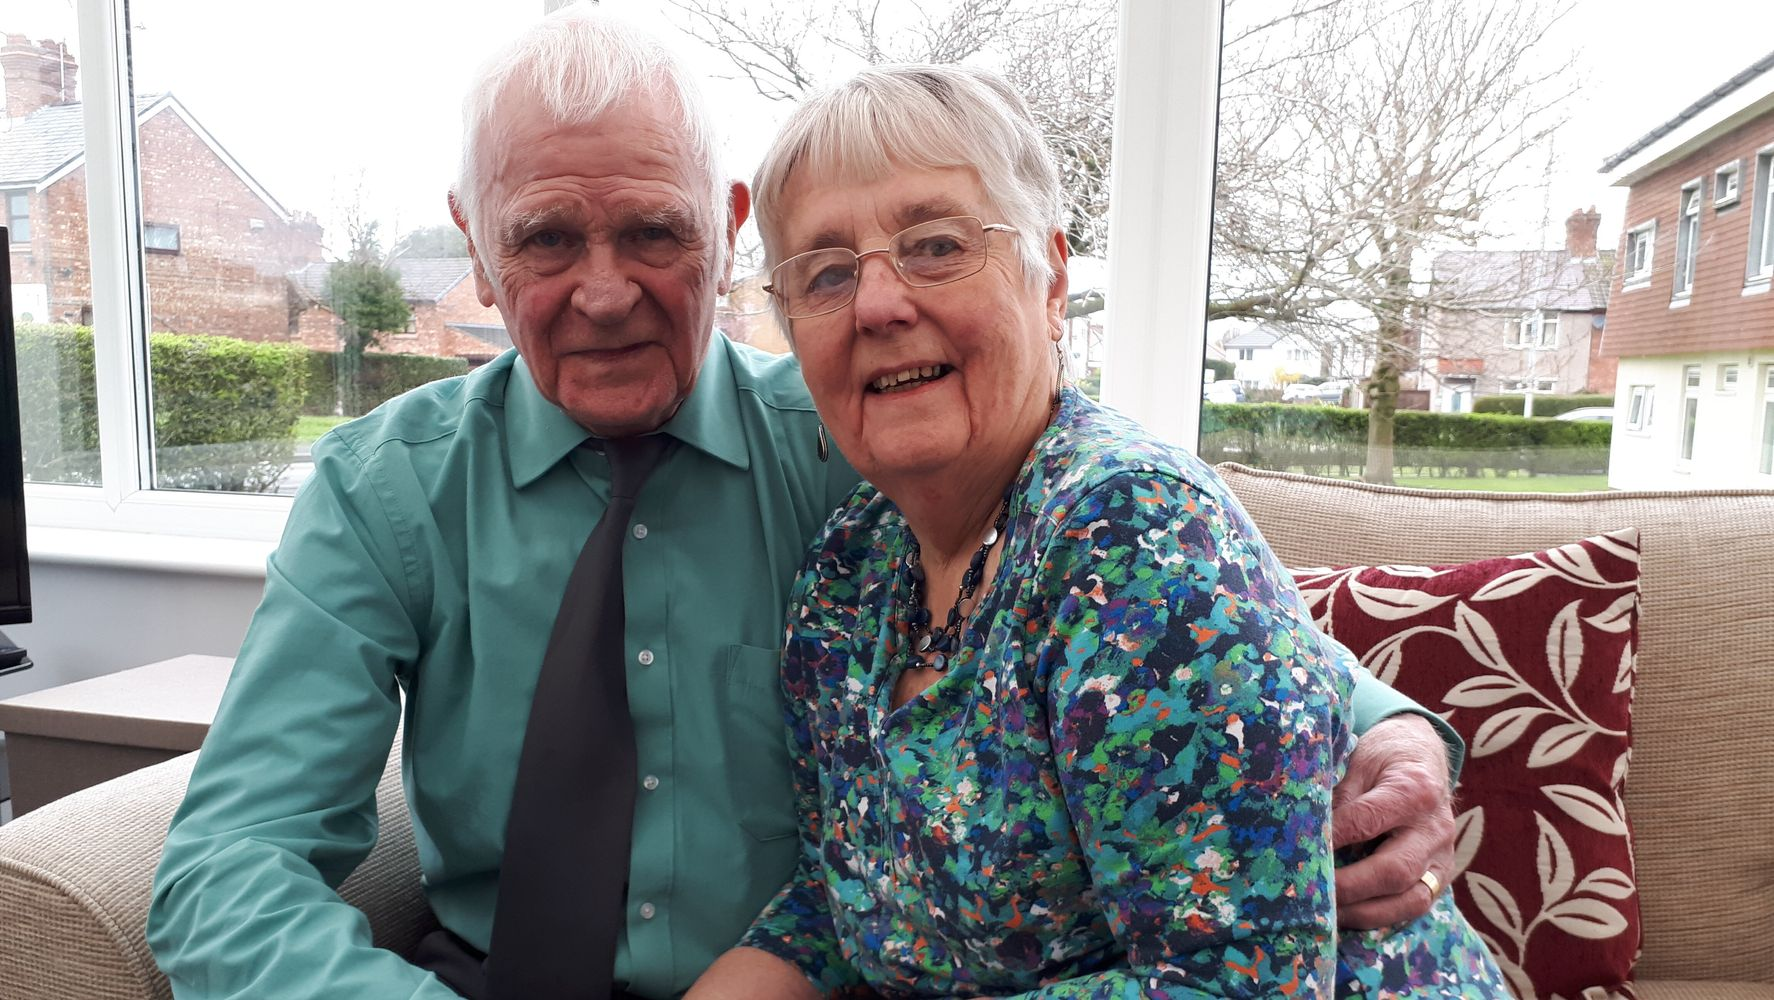 80-Year-Old Widows To Marry After Falling In Love Over A Jigsaw Puzzle